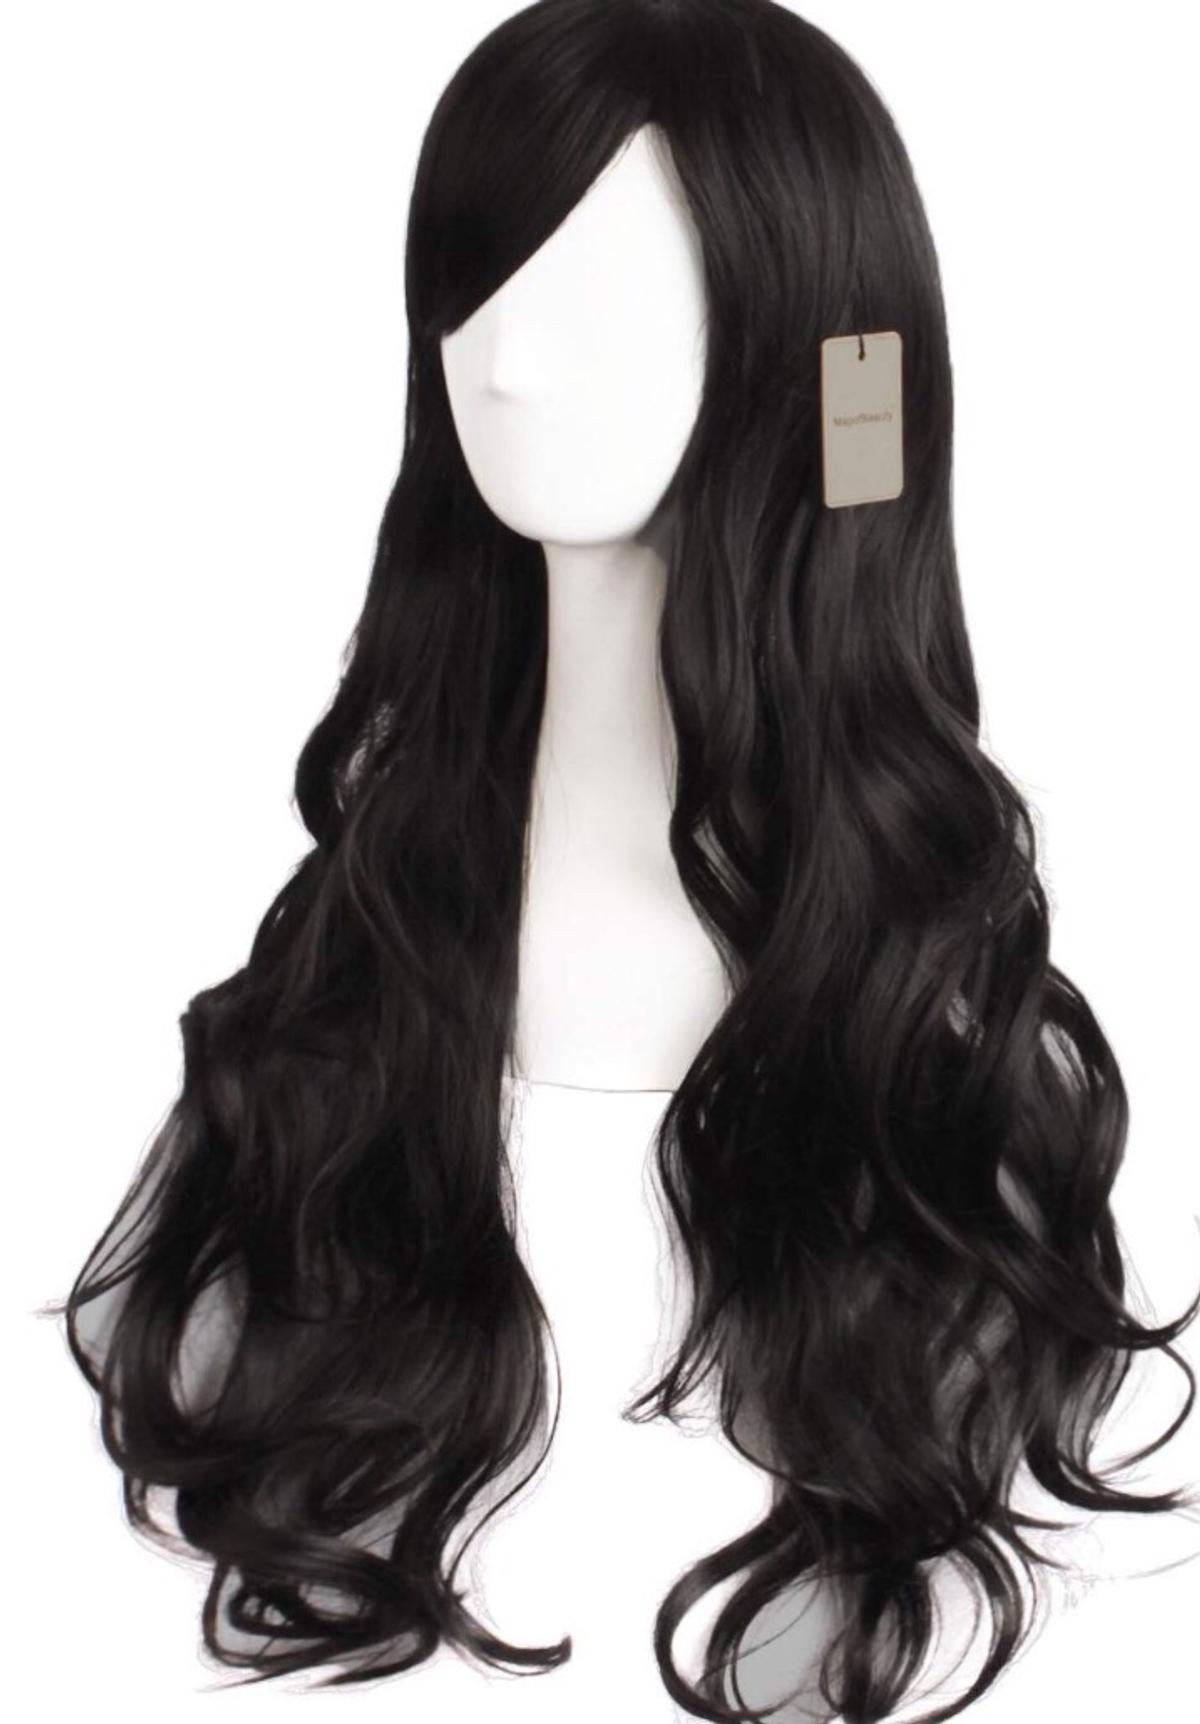 Stunning wig for any occasion